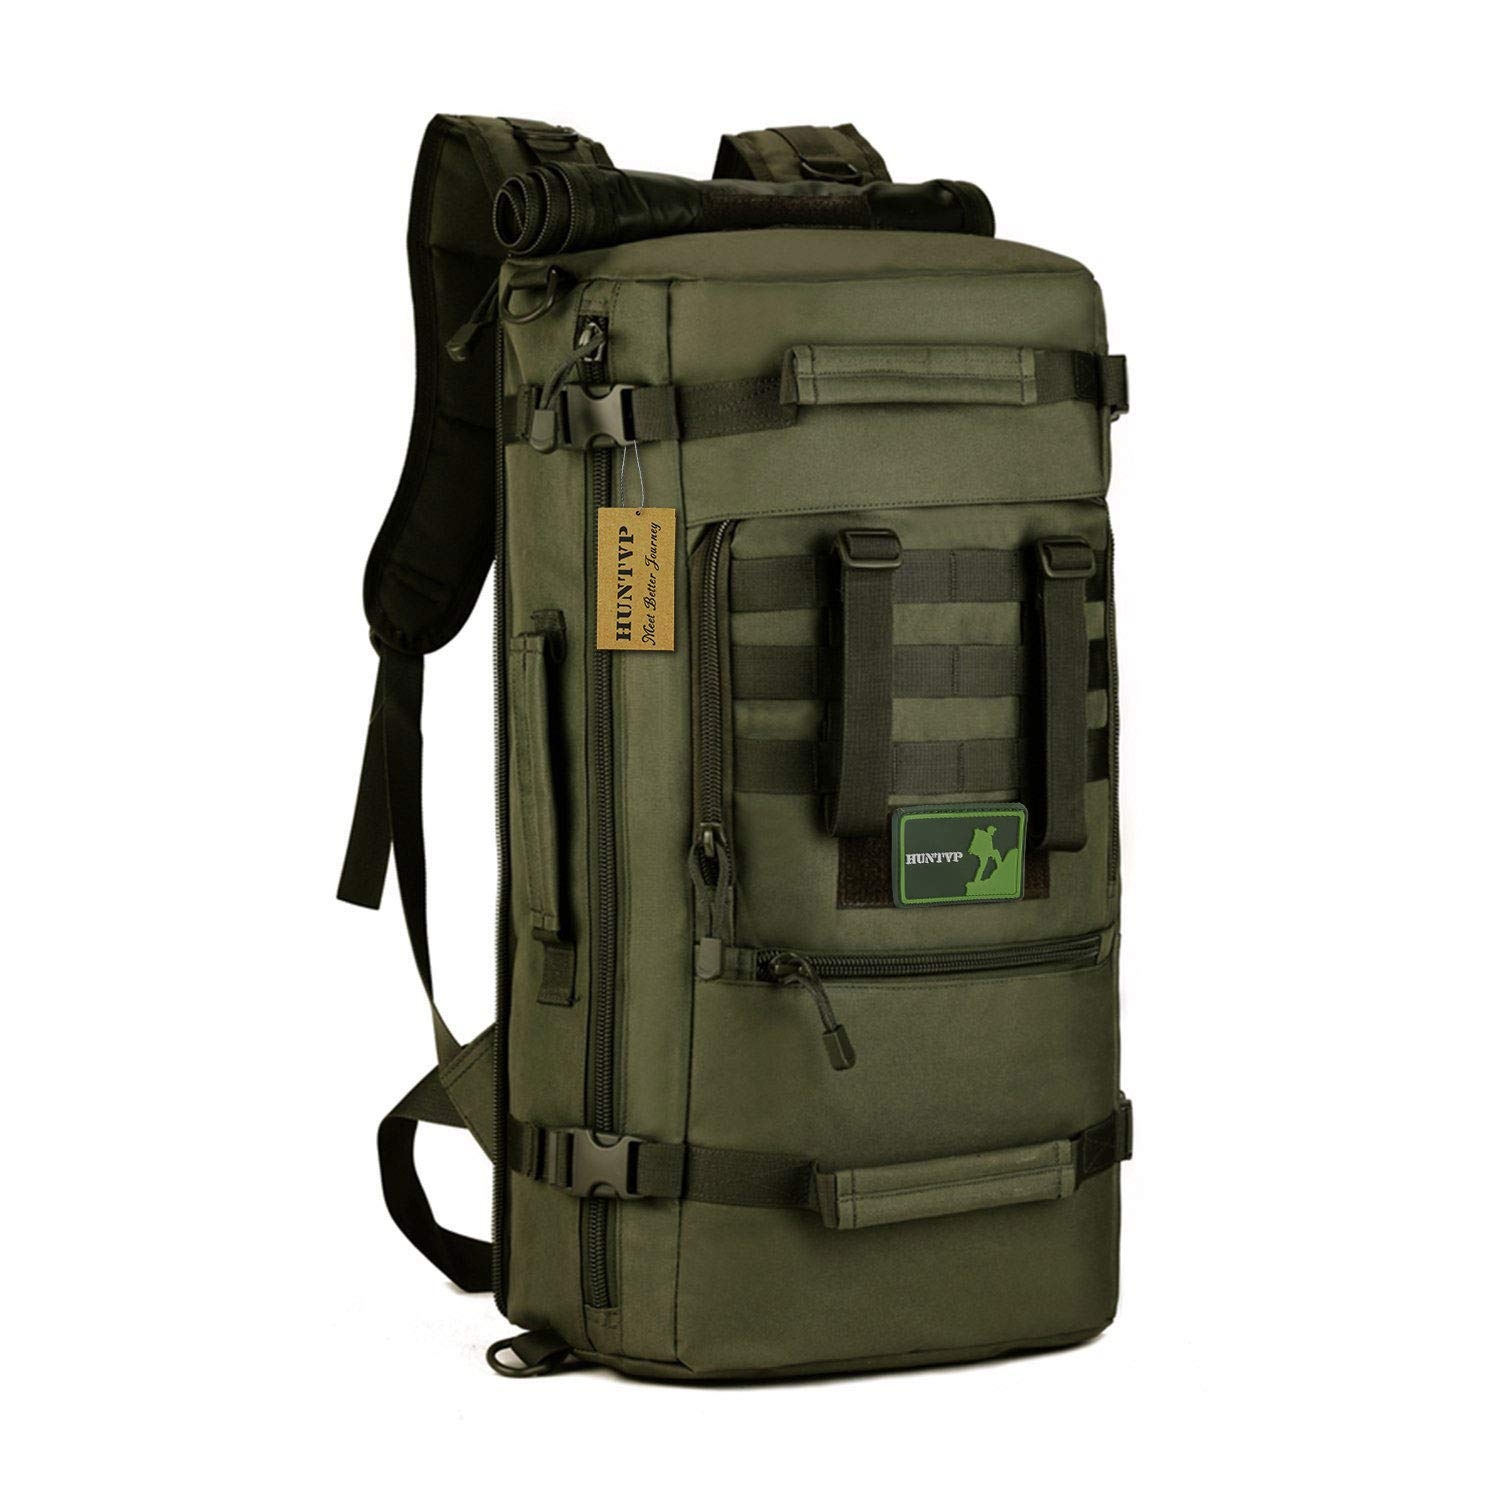 Army Green Predector Plus Tactical Military Molle Assault Backpack 3 Way 50L Rucksack Duffle Tote Bag for Hunting Cycling Camping Trekking